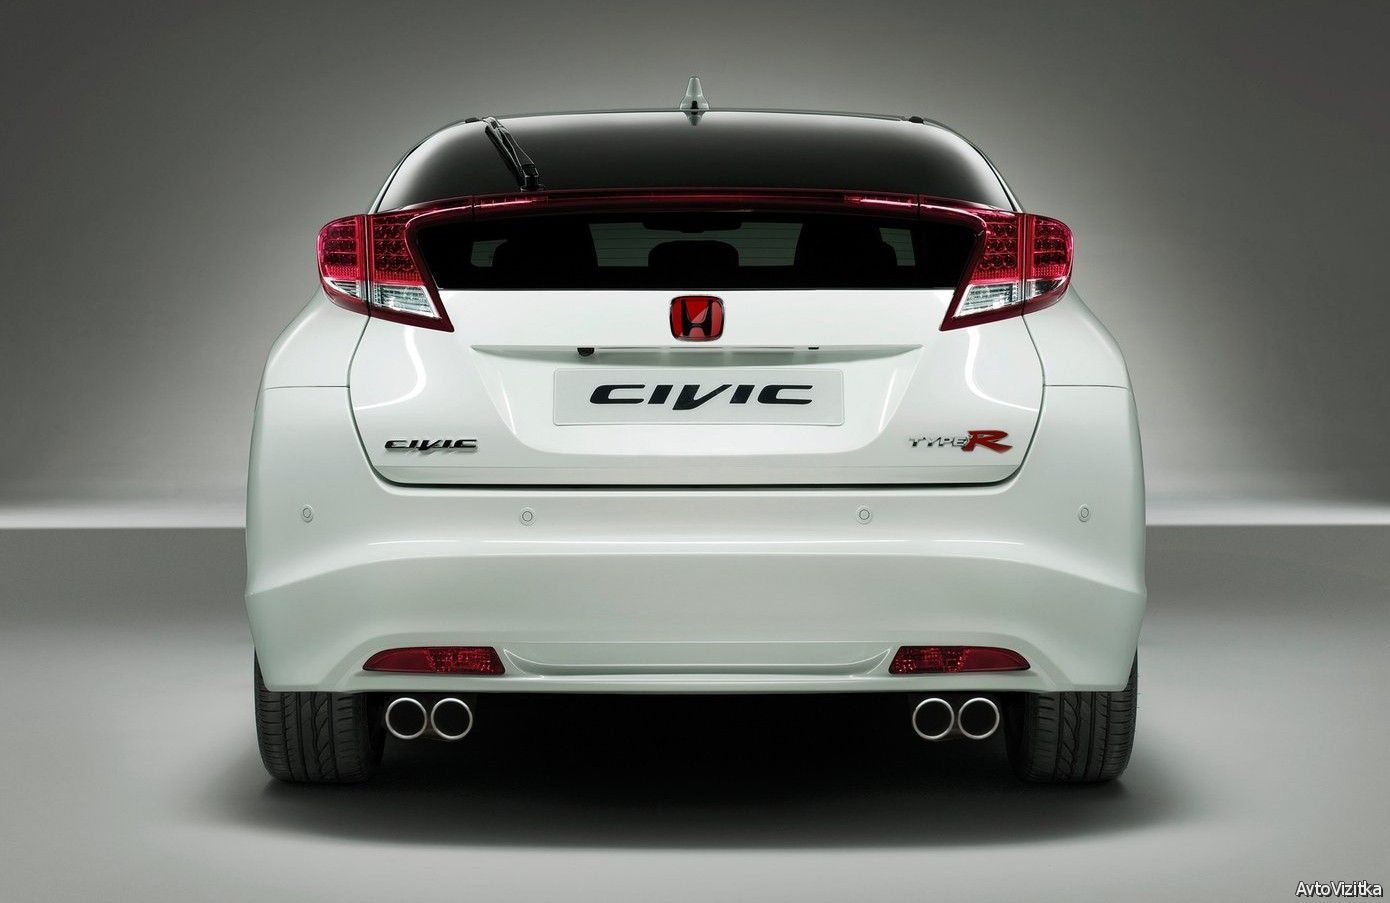 2016 Honda Civic Release Date >> 2016 Honda Civic Concept 2016 Honda Civic Price 2016 Honda